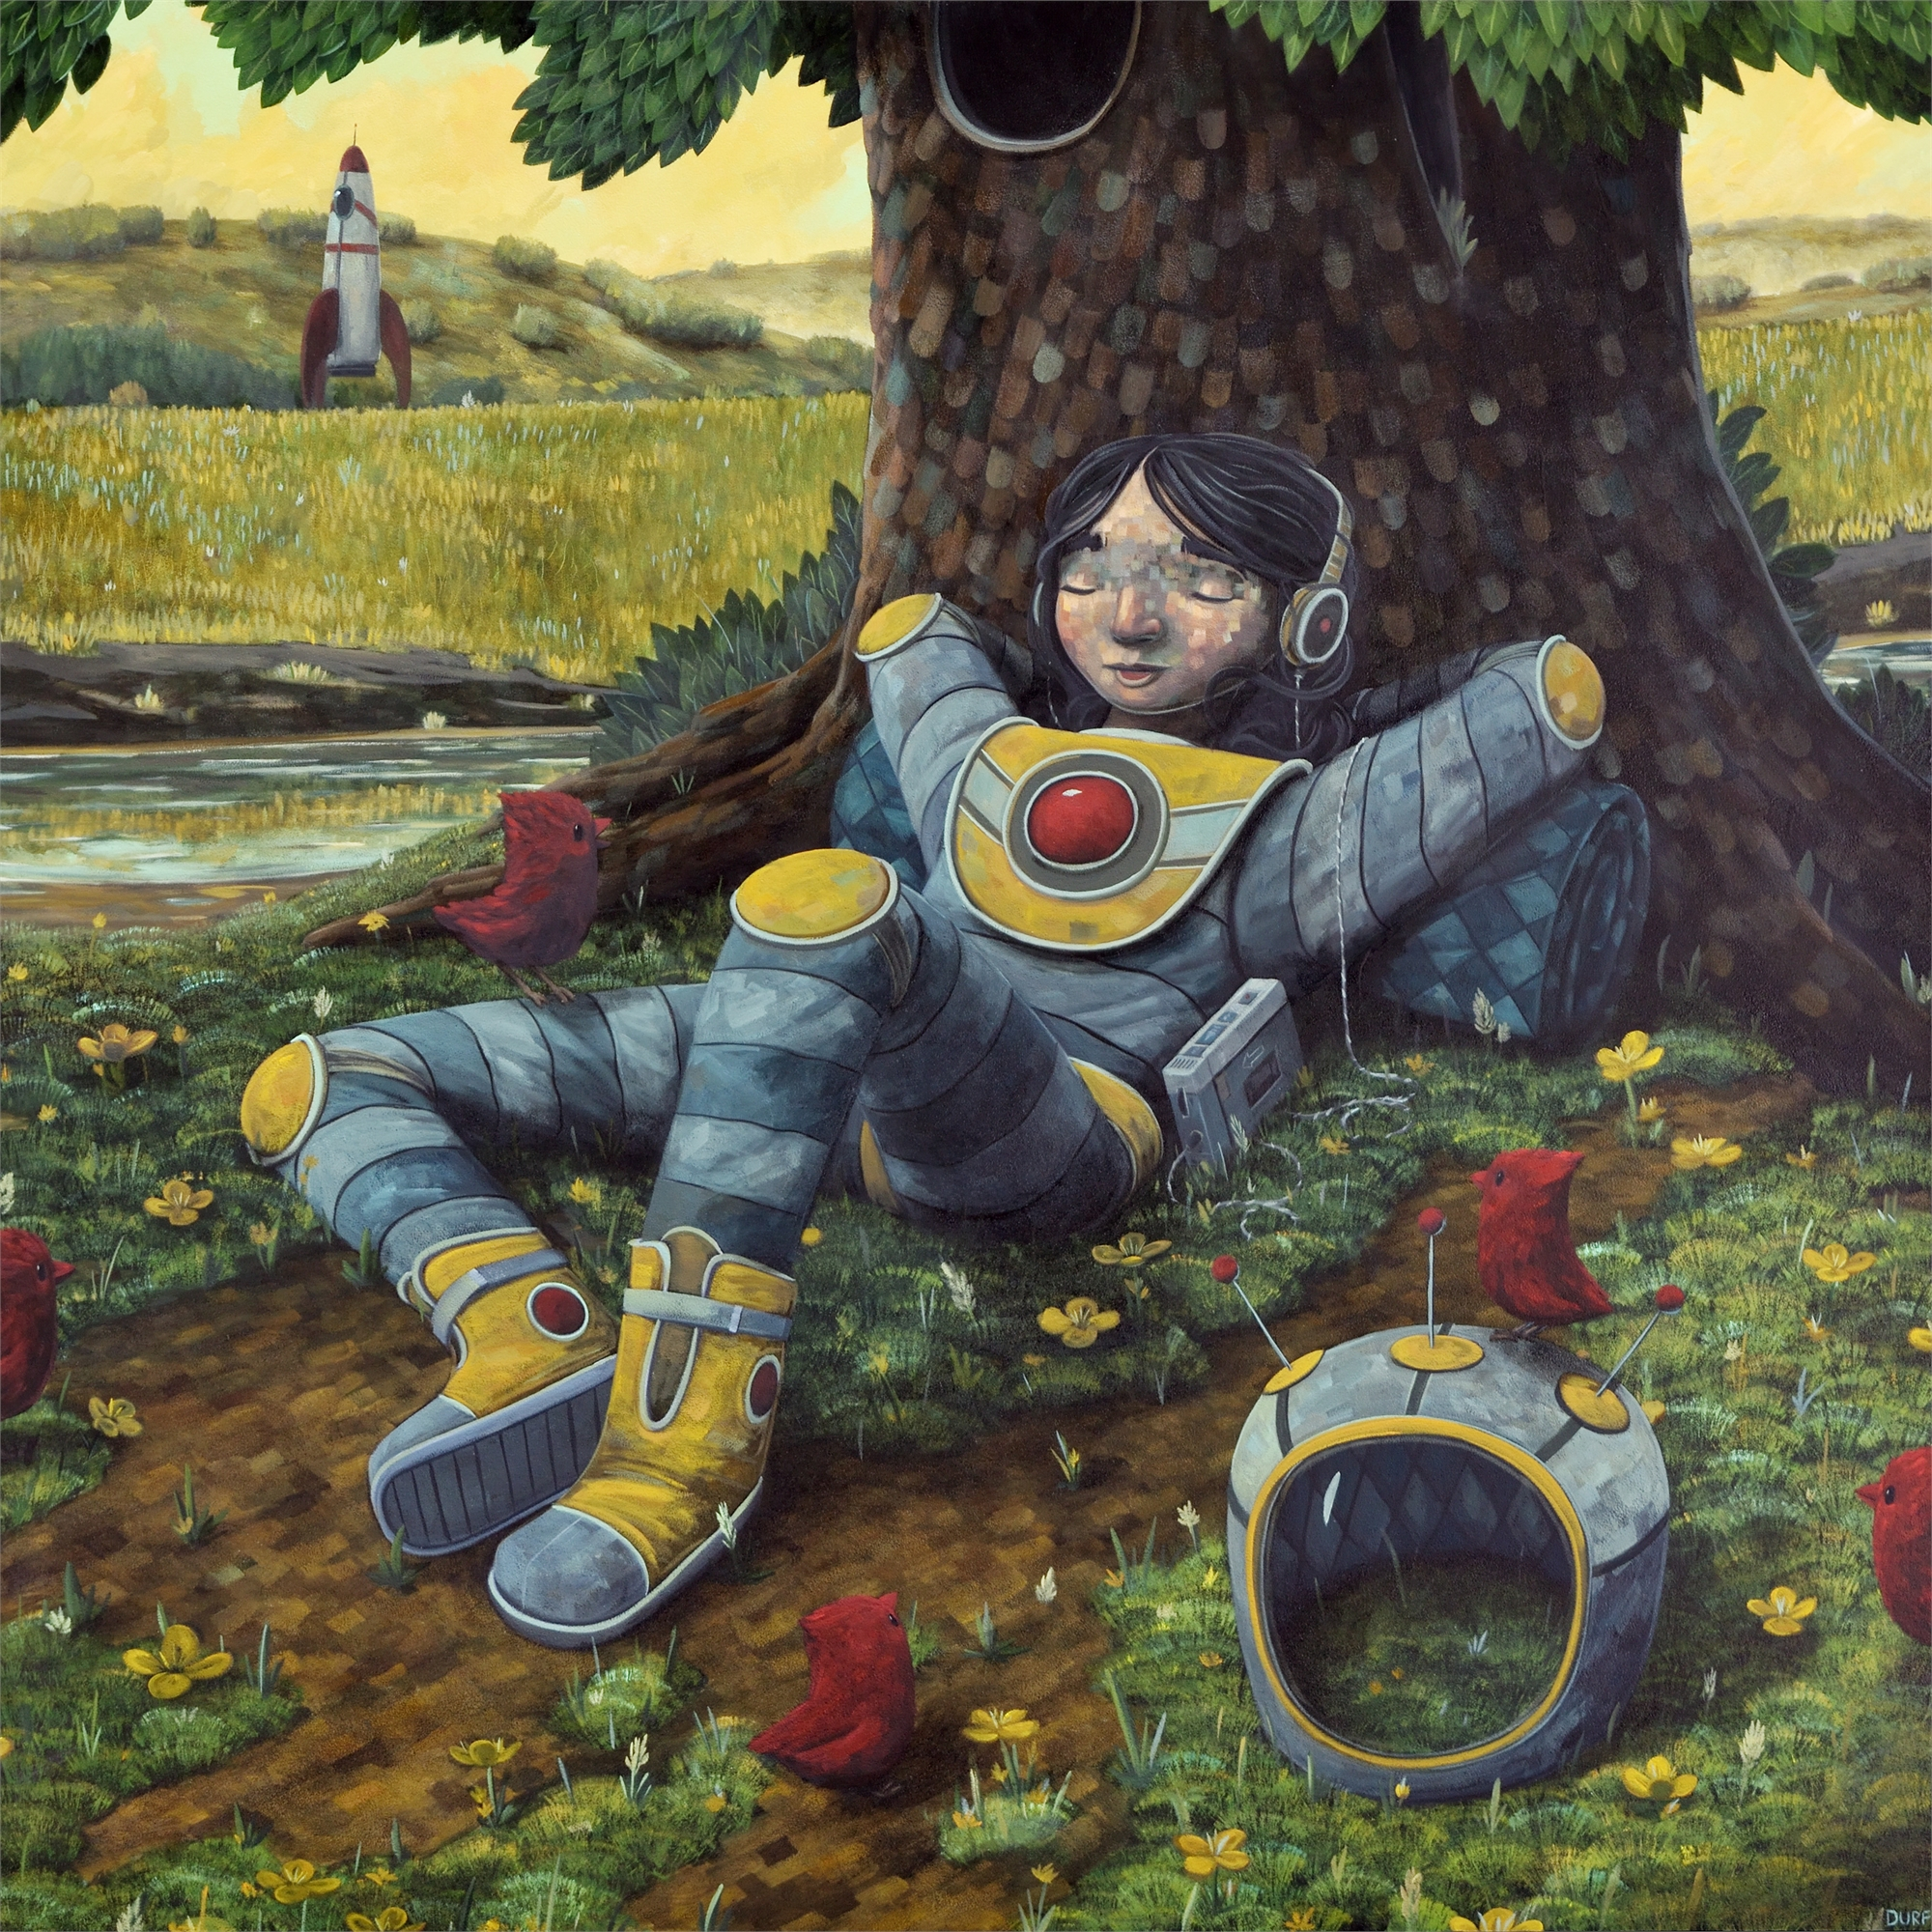 The Relaxing Reunion by Nathan Durfee